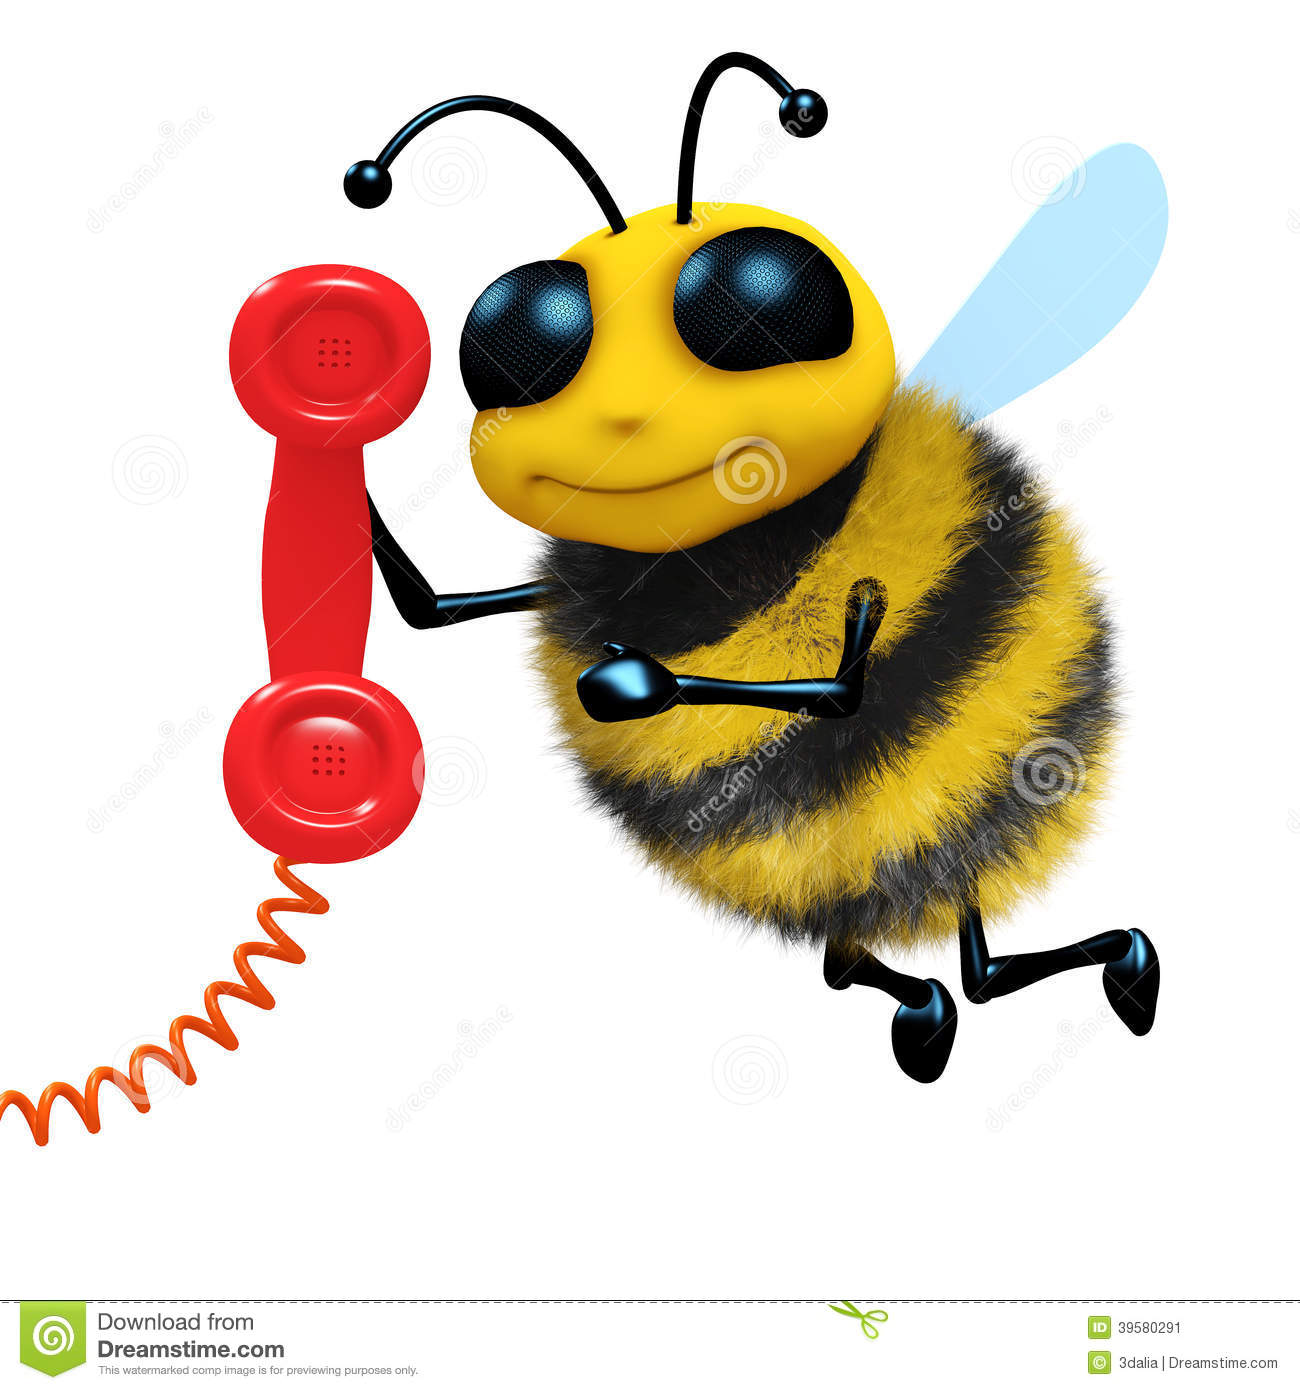 Bumblebee On Phone Wiring Diagrams Fk946 Non Contact Ac Voltage Detector Circuit 3d Telephone Bee Stock Illustration Image Of Funny Wallpaper